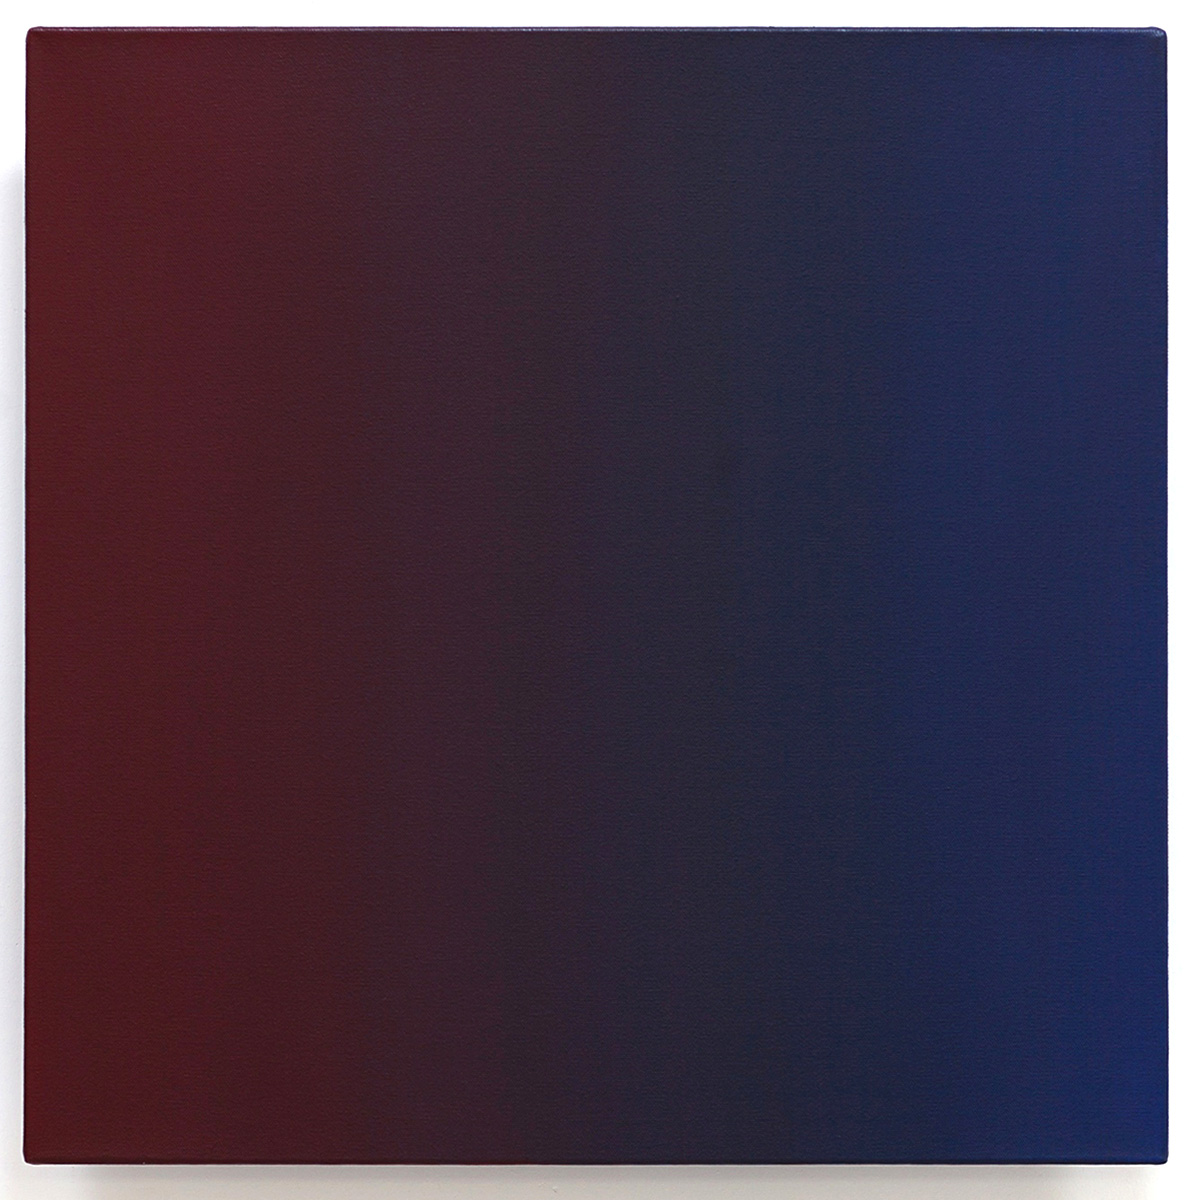 Fiend (Red Blue), Present Fugitive Series, 2010, oil on canvas on custom beveled stretcher, 24 x 24 x 3 in. (61 x 61 x 7 cm.)